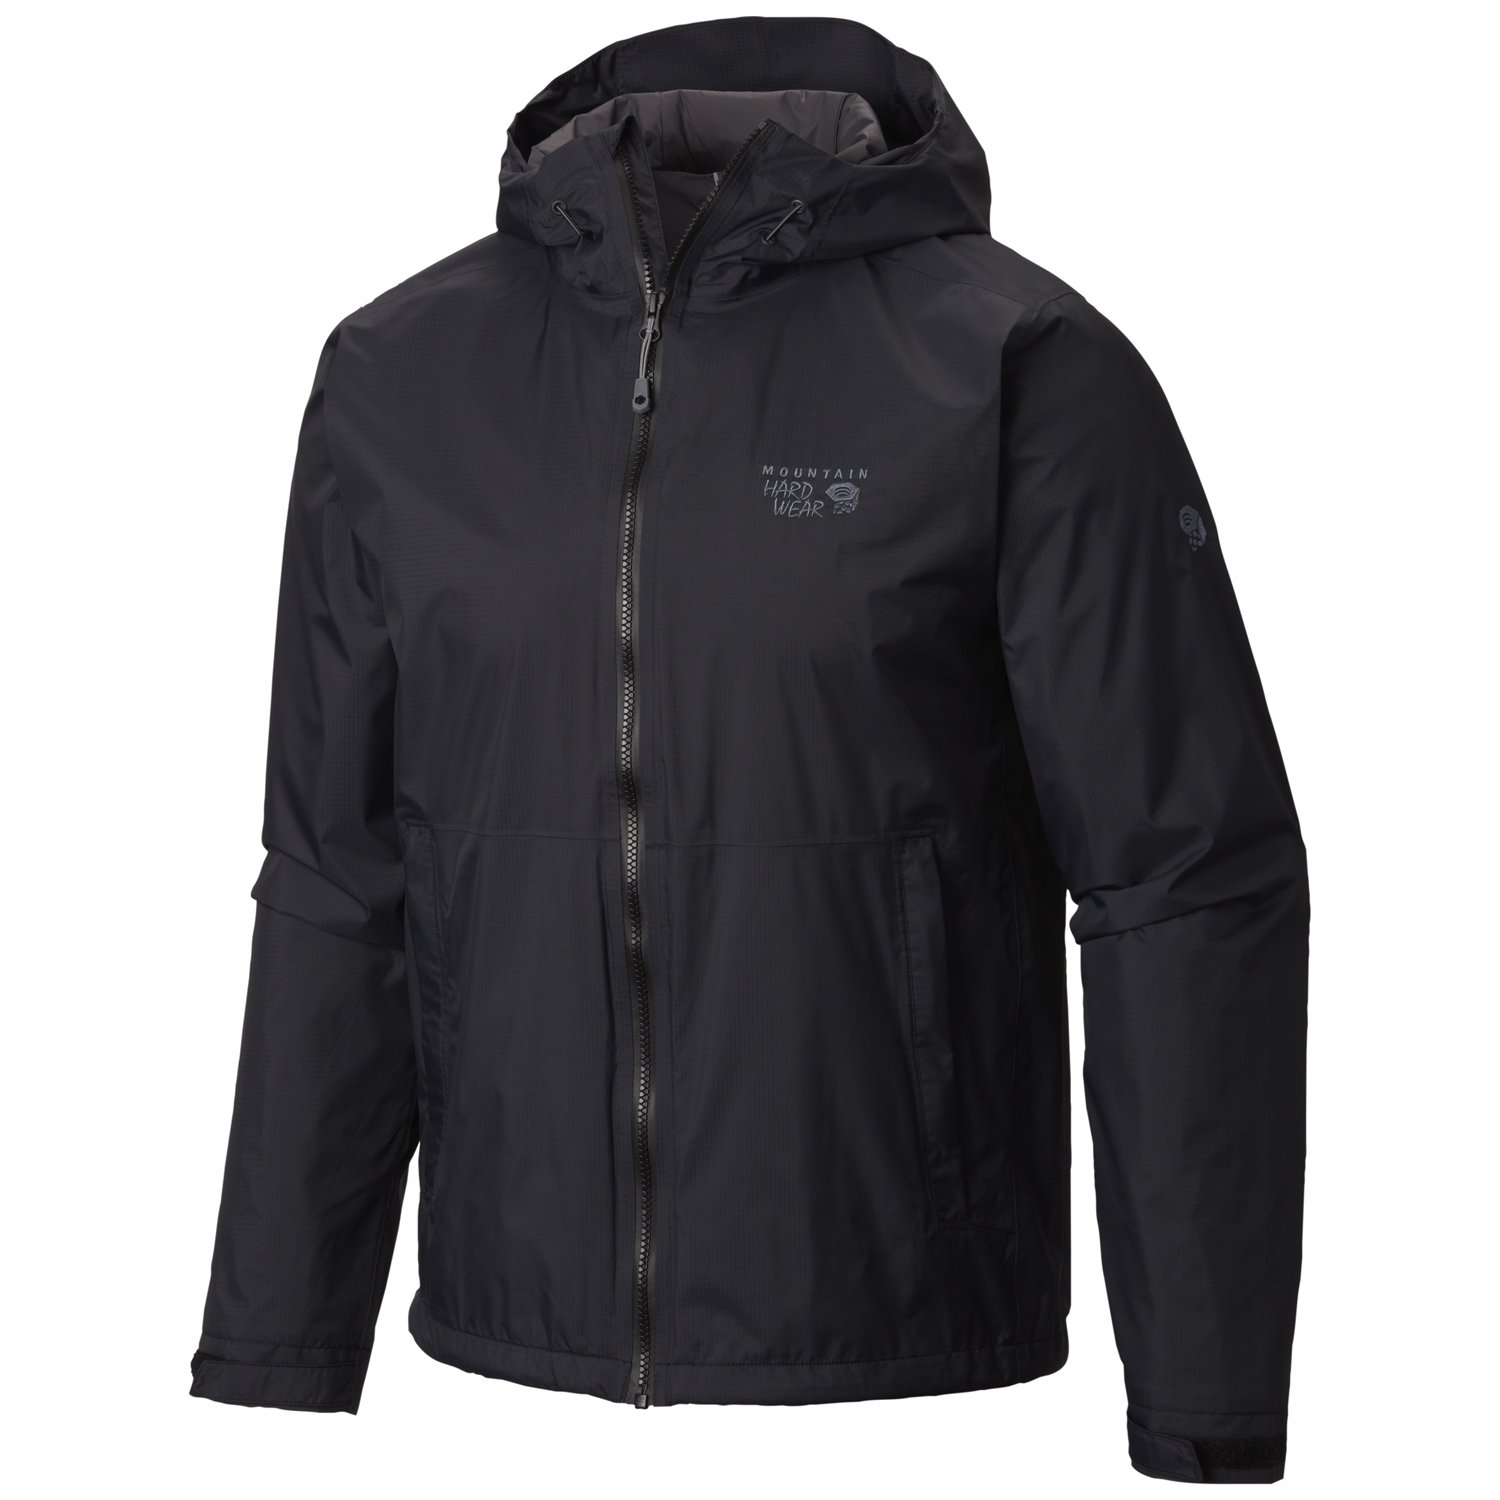 Mountain Hardwear Finder Jacket - Men's Black Small